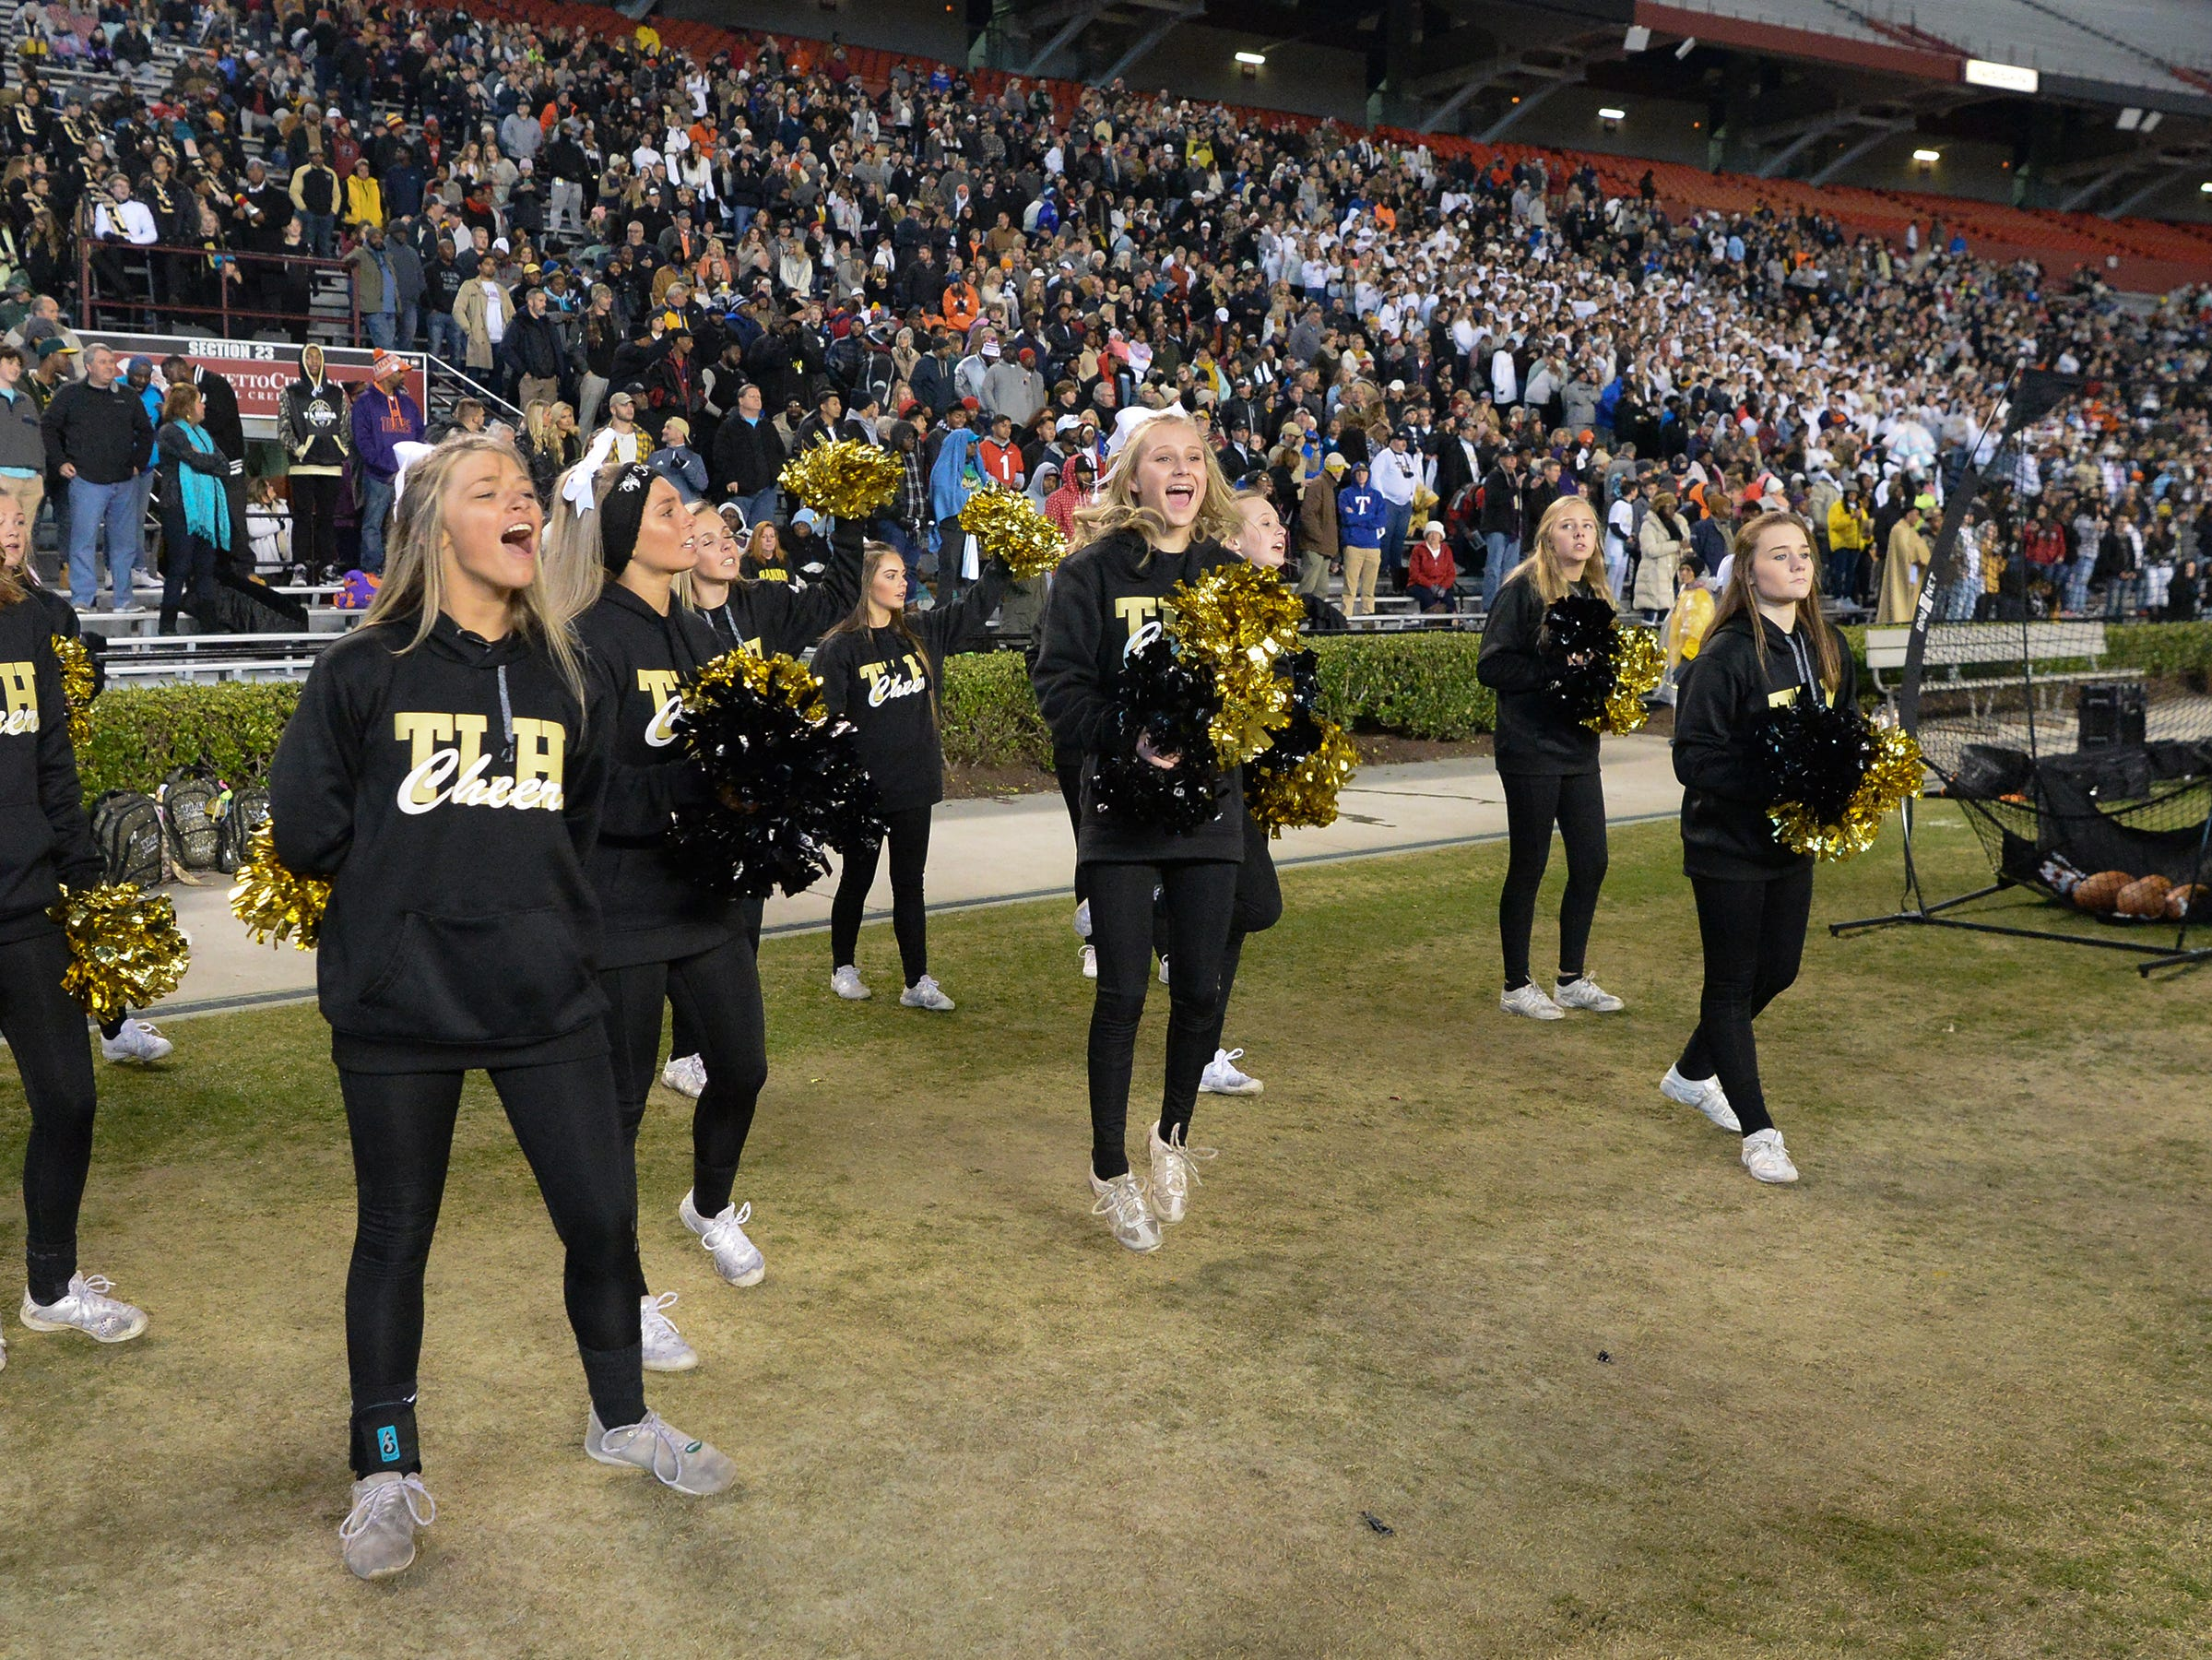 TL Hanna High School cheerleaders during the third quarter of the Class AAAAA state championship game at Williams-Brice Stadium in Columbia Saturday, December 8, 2018.